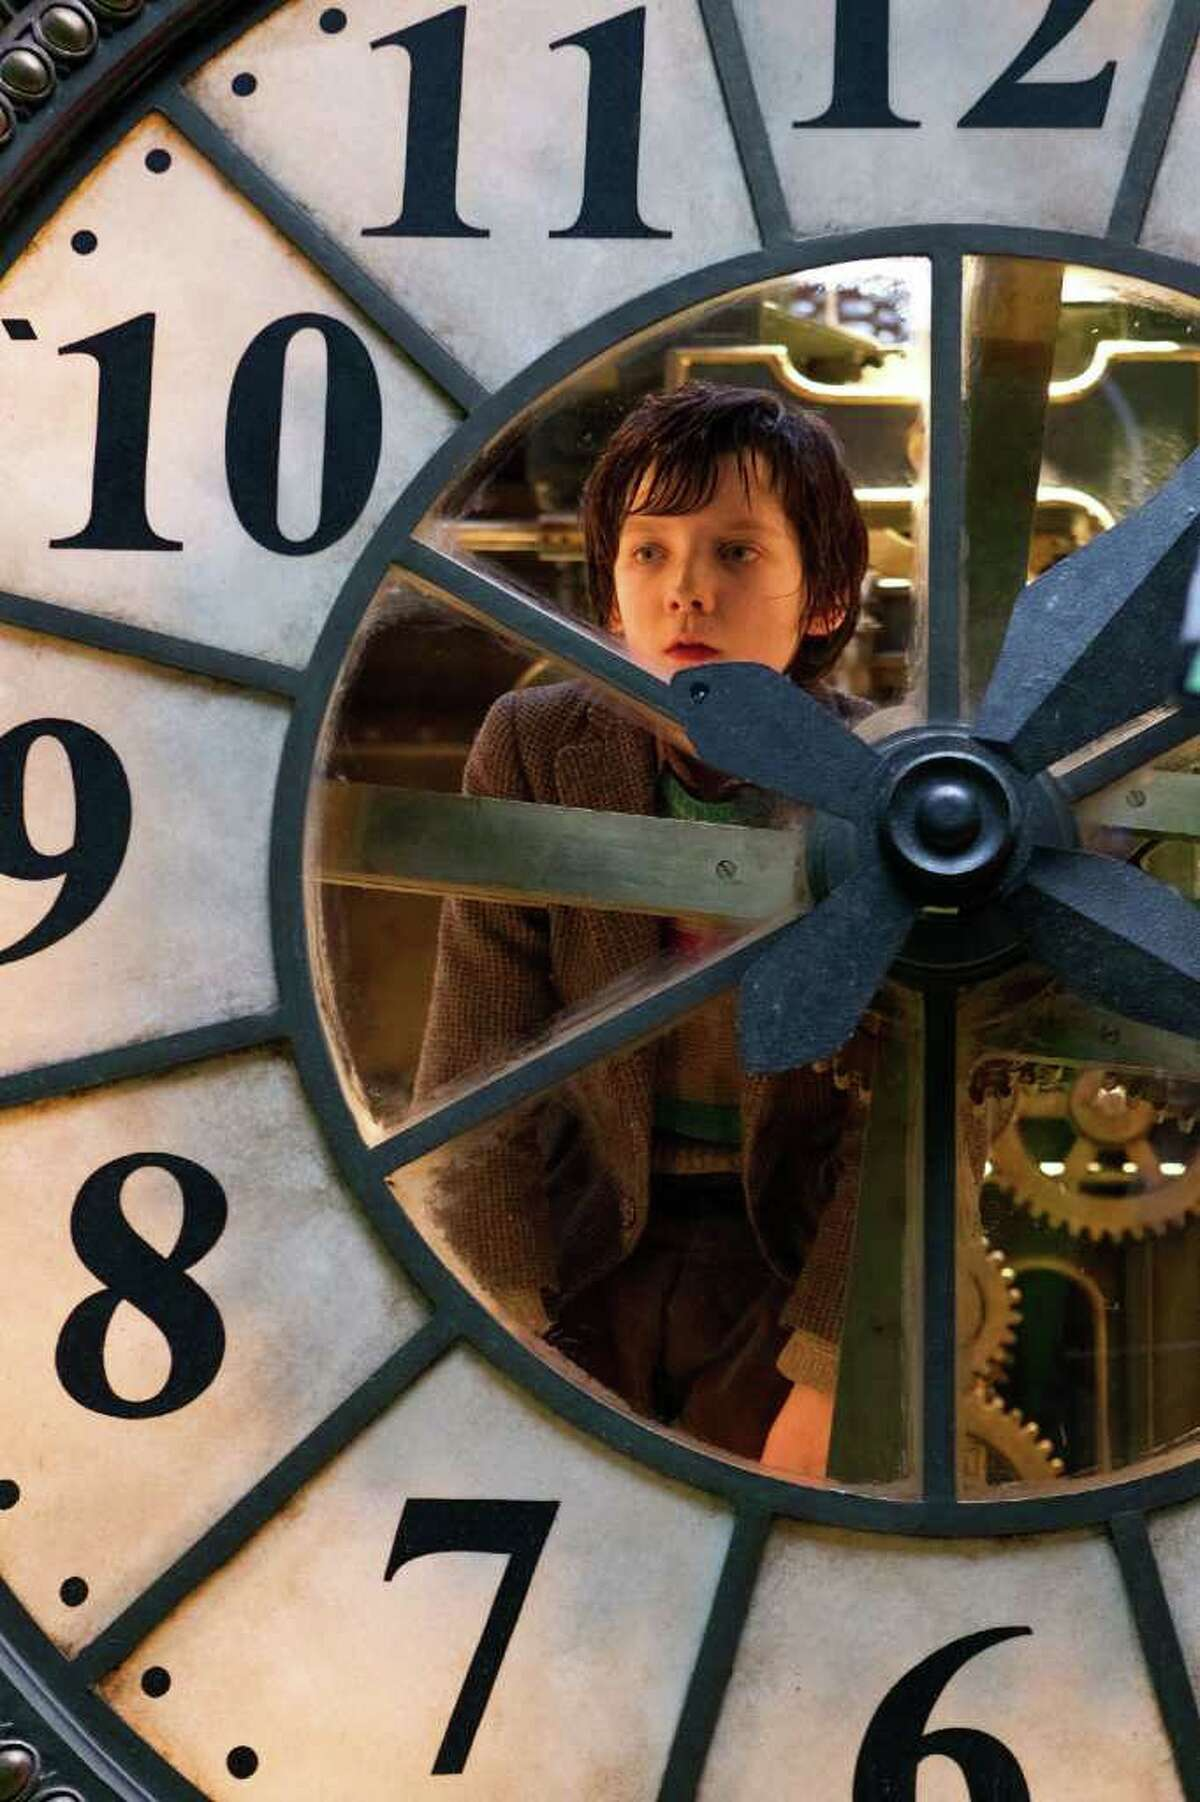 """In this image released by Paramount Pictures, Asa Butterfield portrays Hugo Cabret in a scene from """"Hugo."""" The film was nominated Tuesday, Jan. 24, 2012 for an Oscar for best film. The Oscars will be presented Feb. 26 at the Kodak Theatre in Los Angeles, hosted by Billy Crystal and broadcast live on ABC. (AP Photo/Paramount Pictures, Jaap Buitendijk)"""